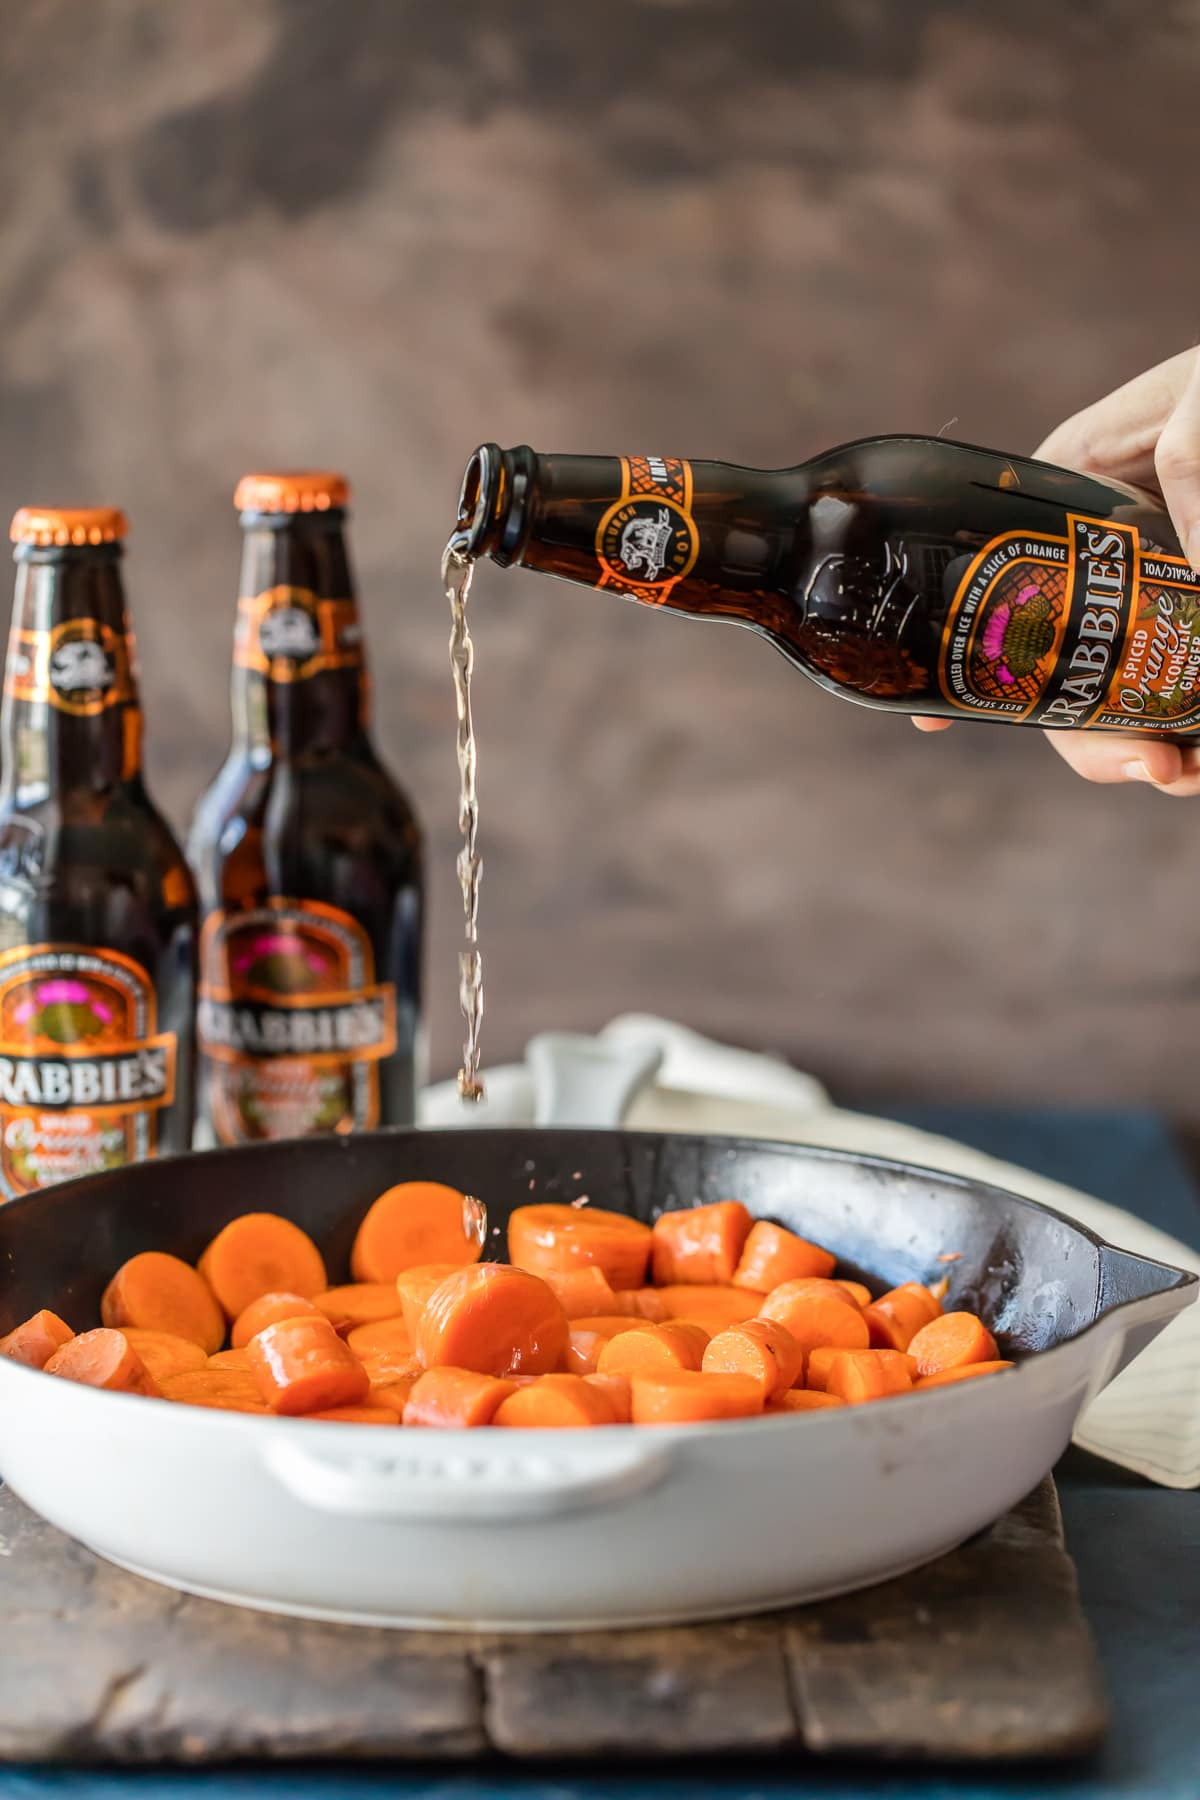 Pouring ginger beer over sliced carrots in a skillet